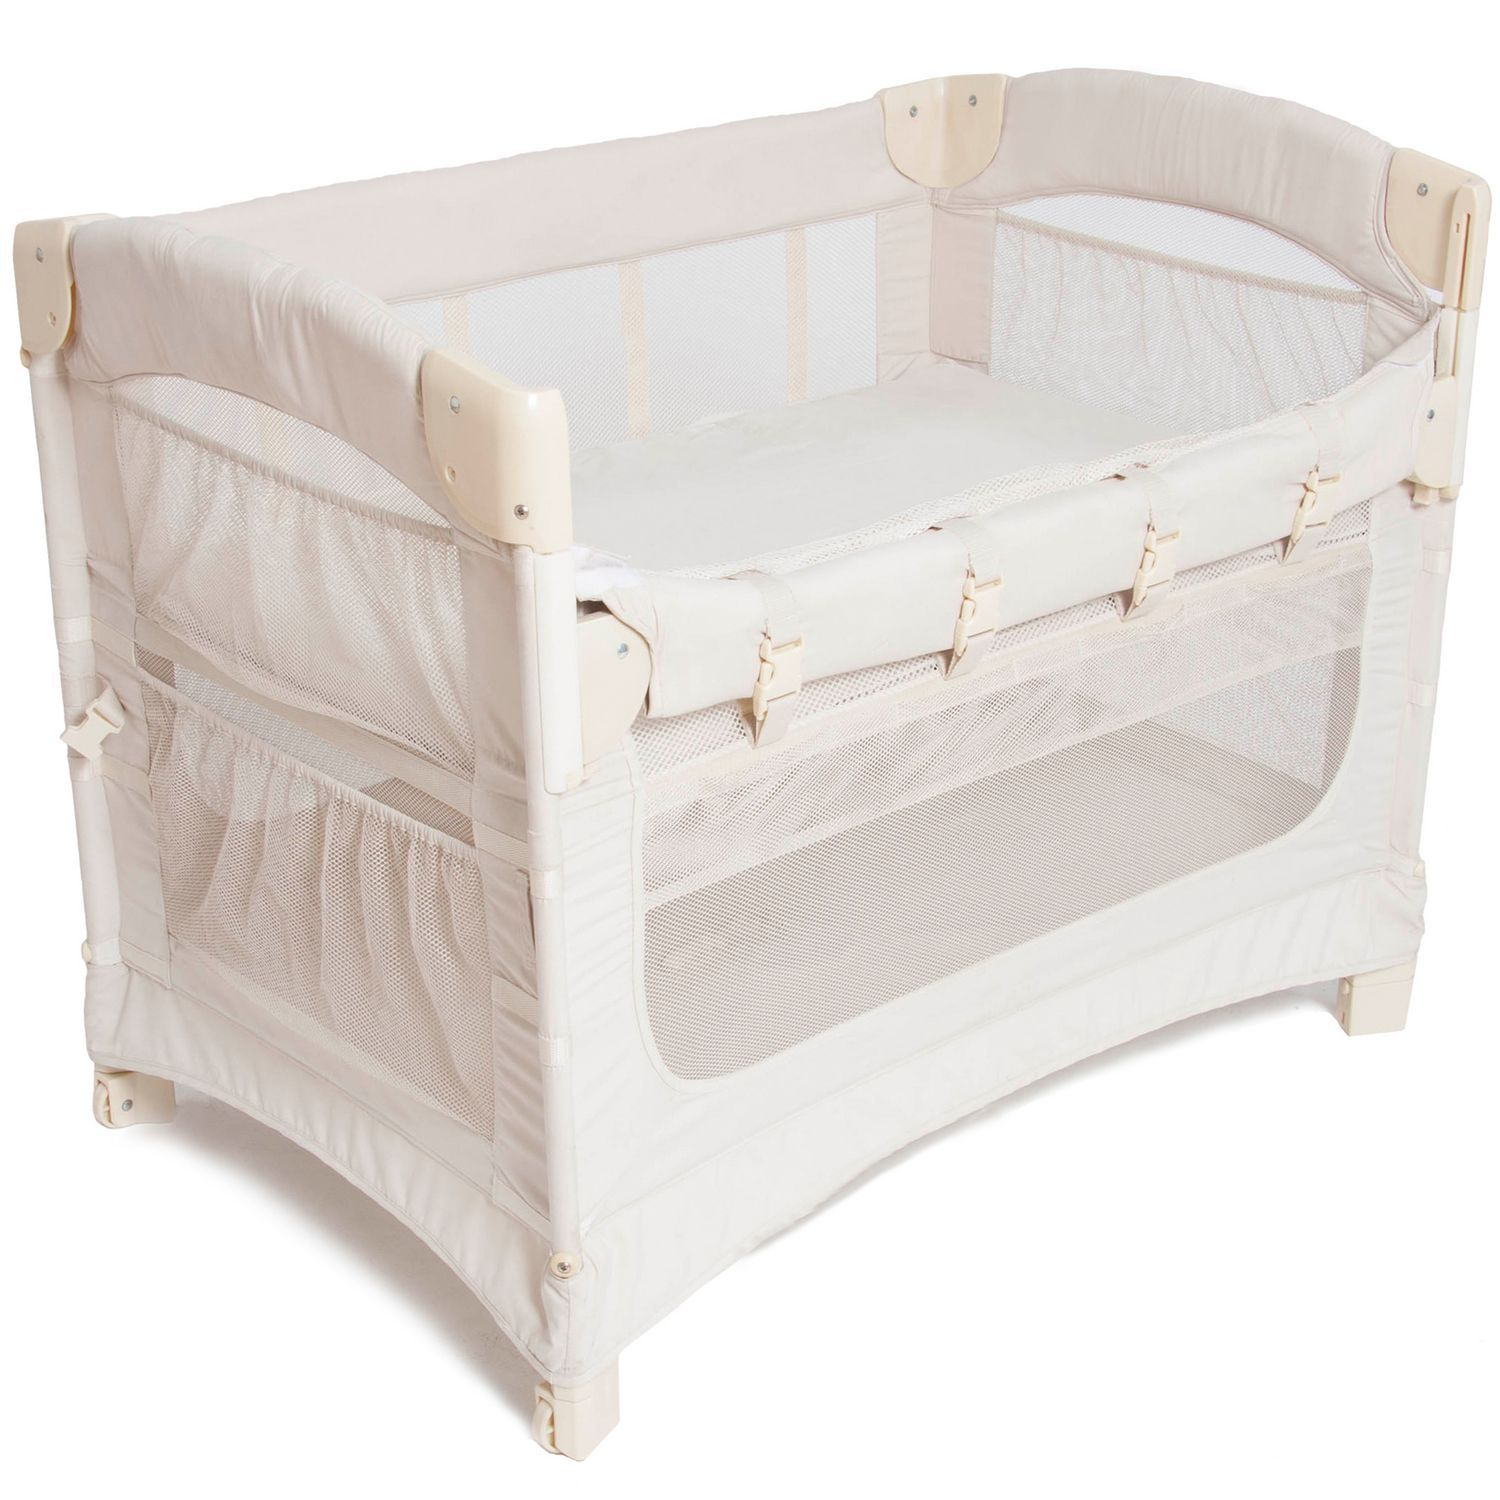 Ideal Ezee 3-in-1 Cosleeper w/Skirt - Natural